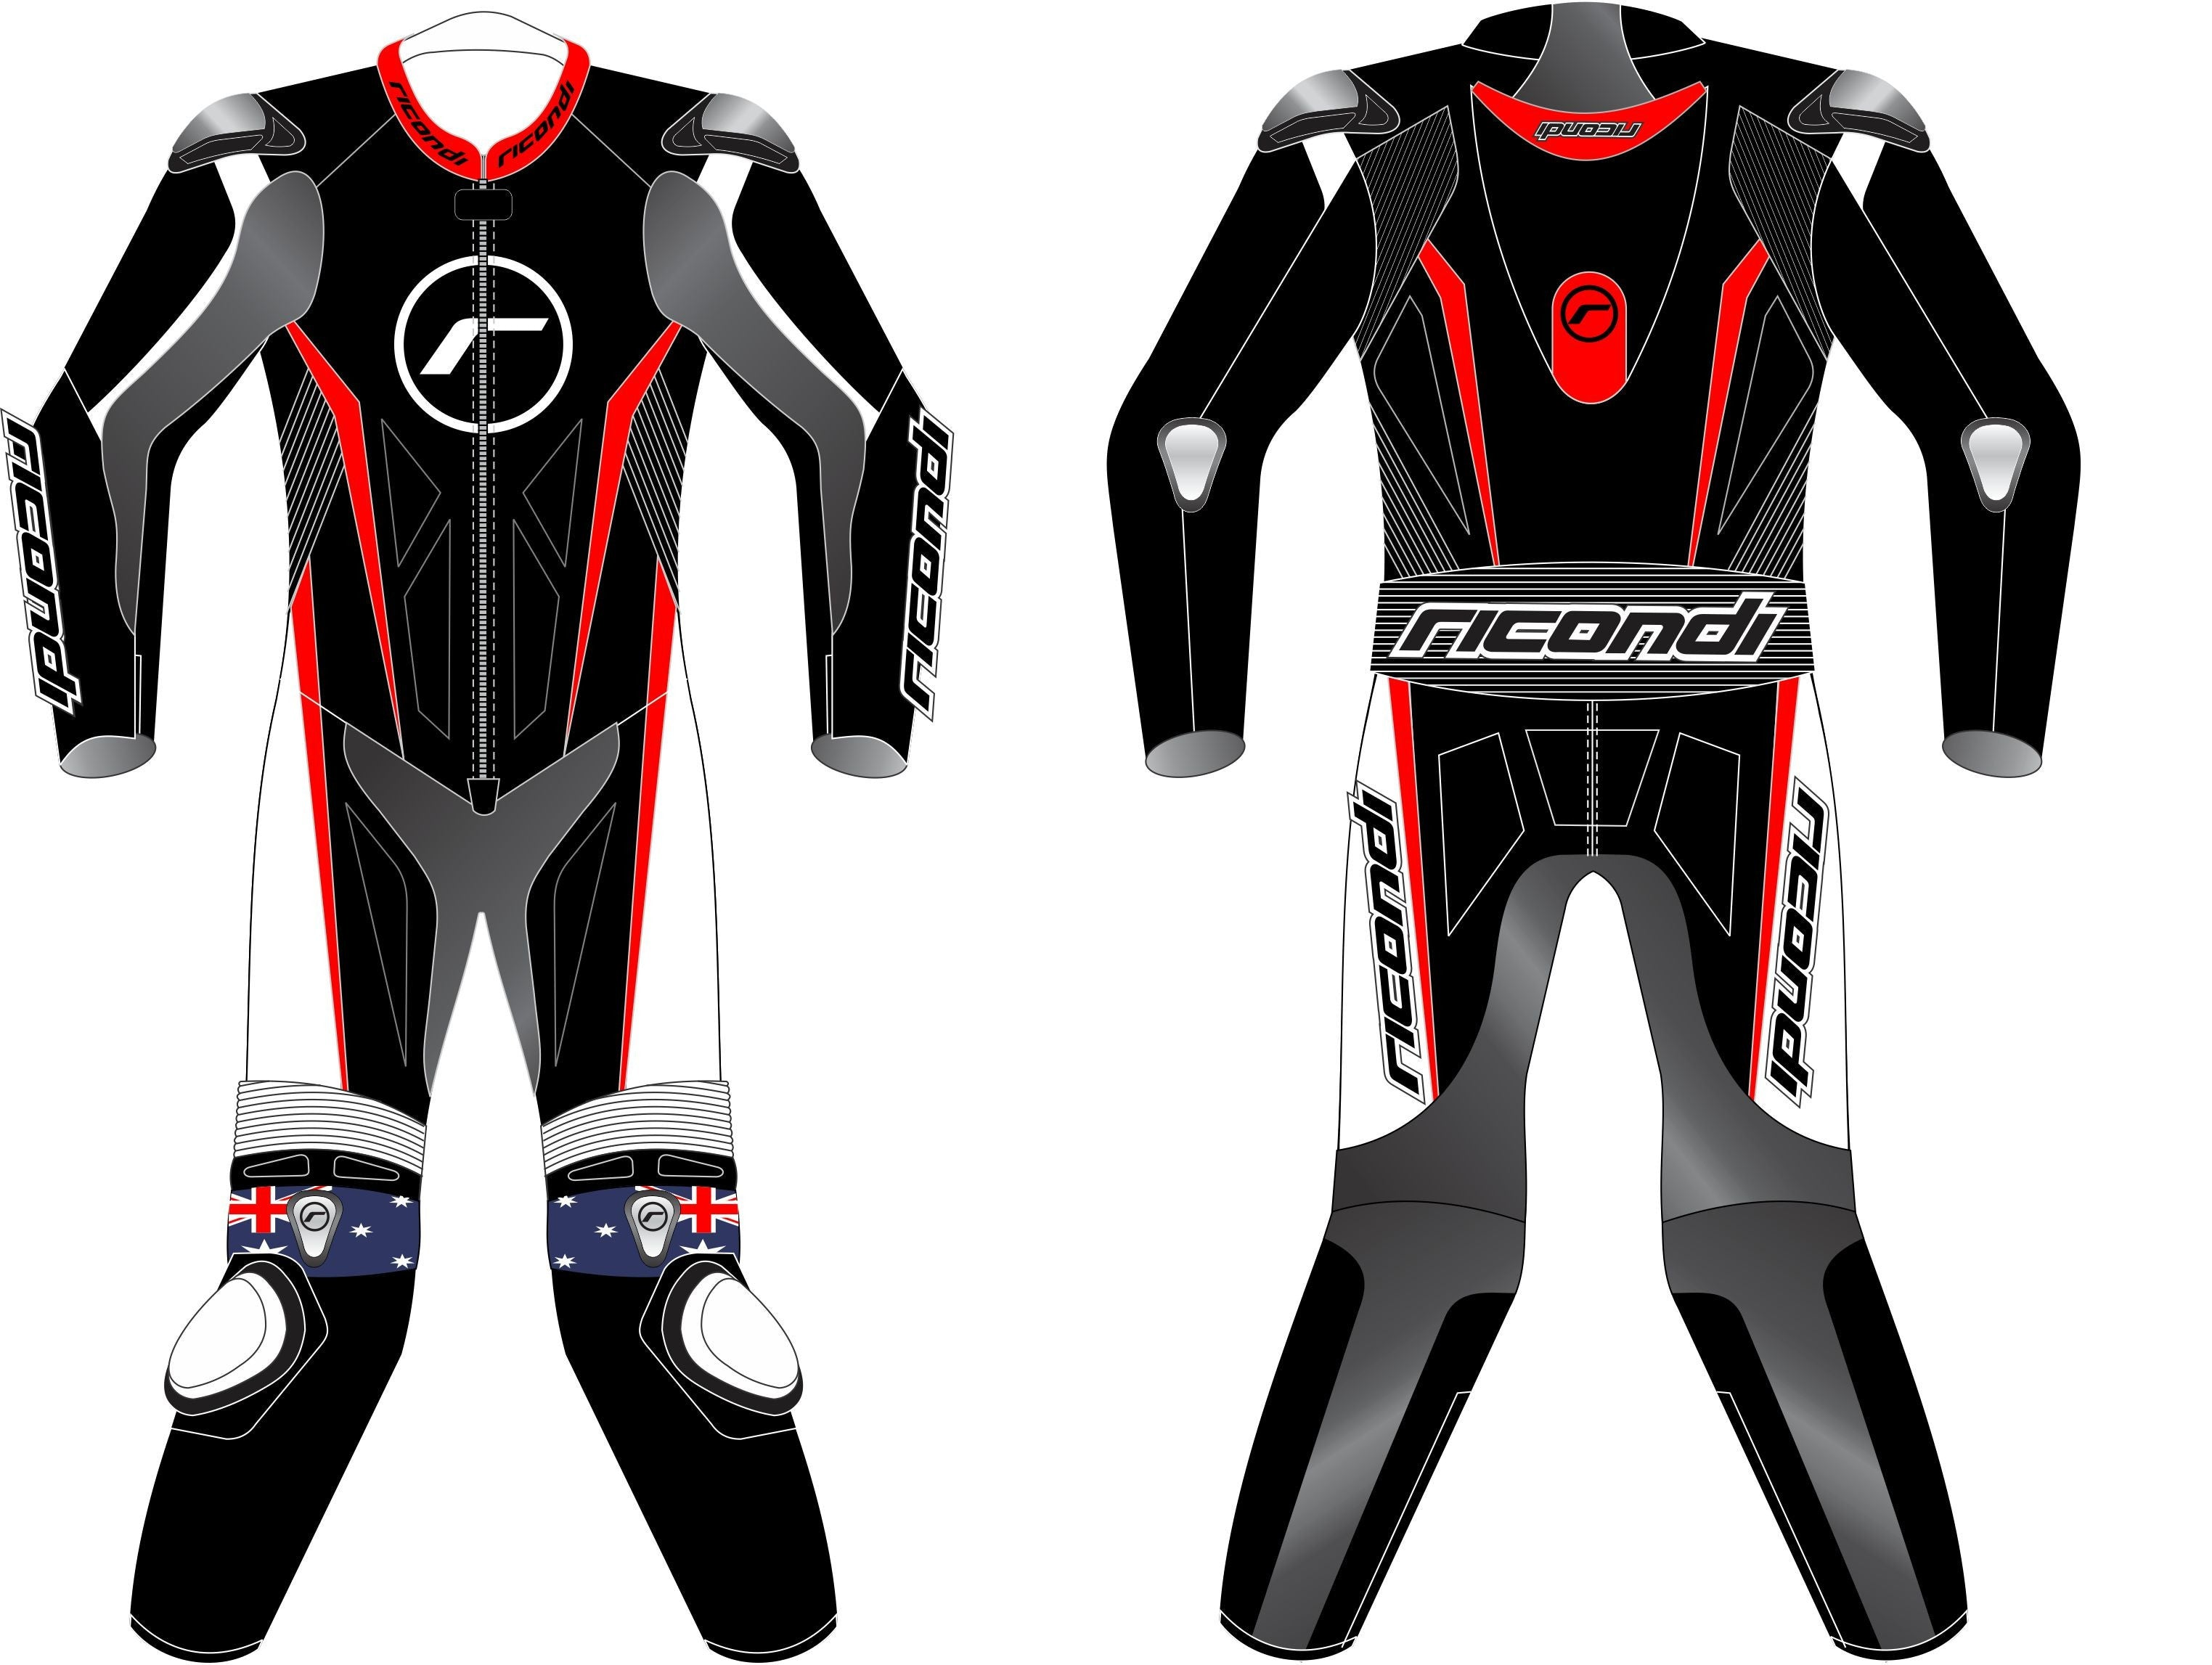 WORLD CLASS - RICONDI RACING SERIES IV RACE SUIT